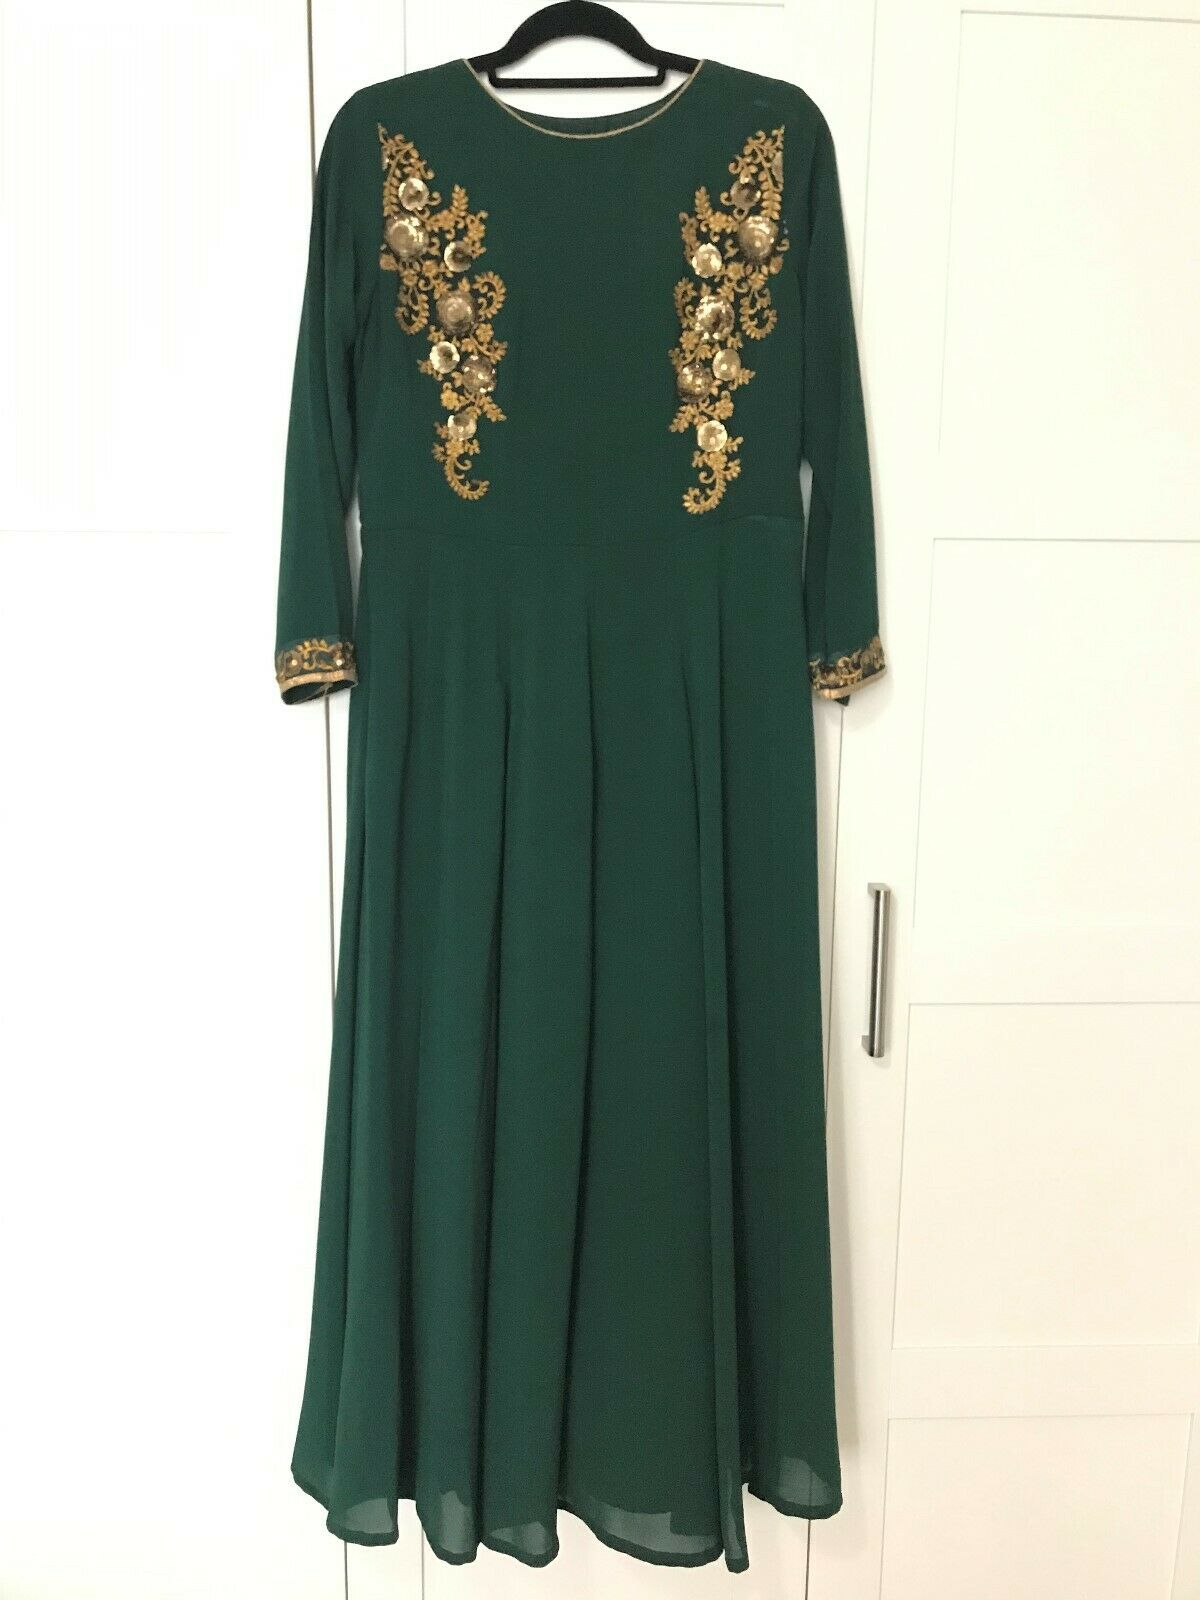 womens dark green indian maxi A-line dress gold sequin scarf included size 10/12